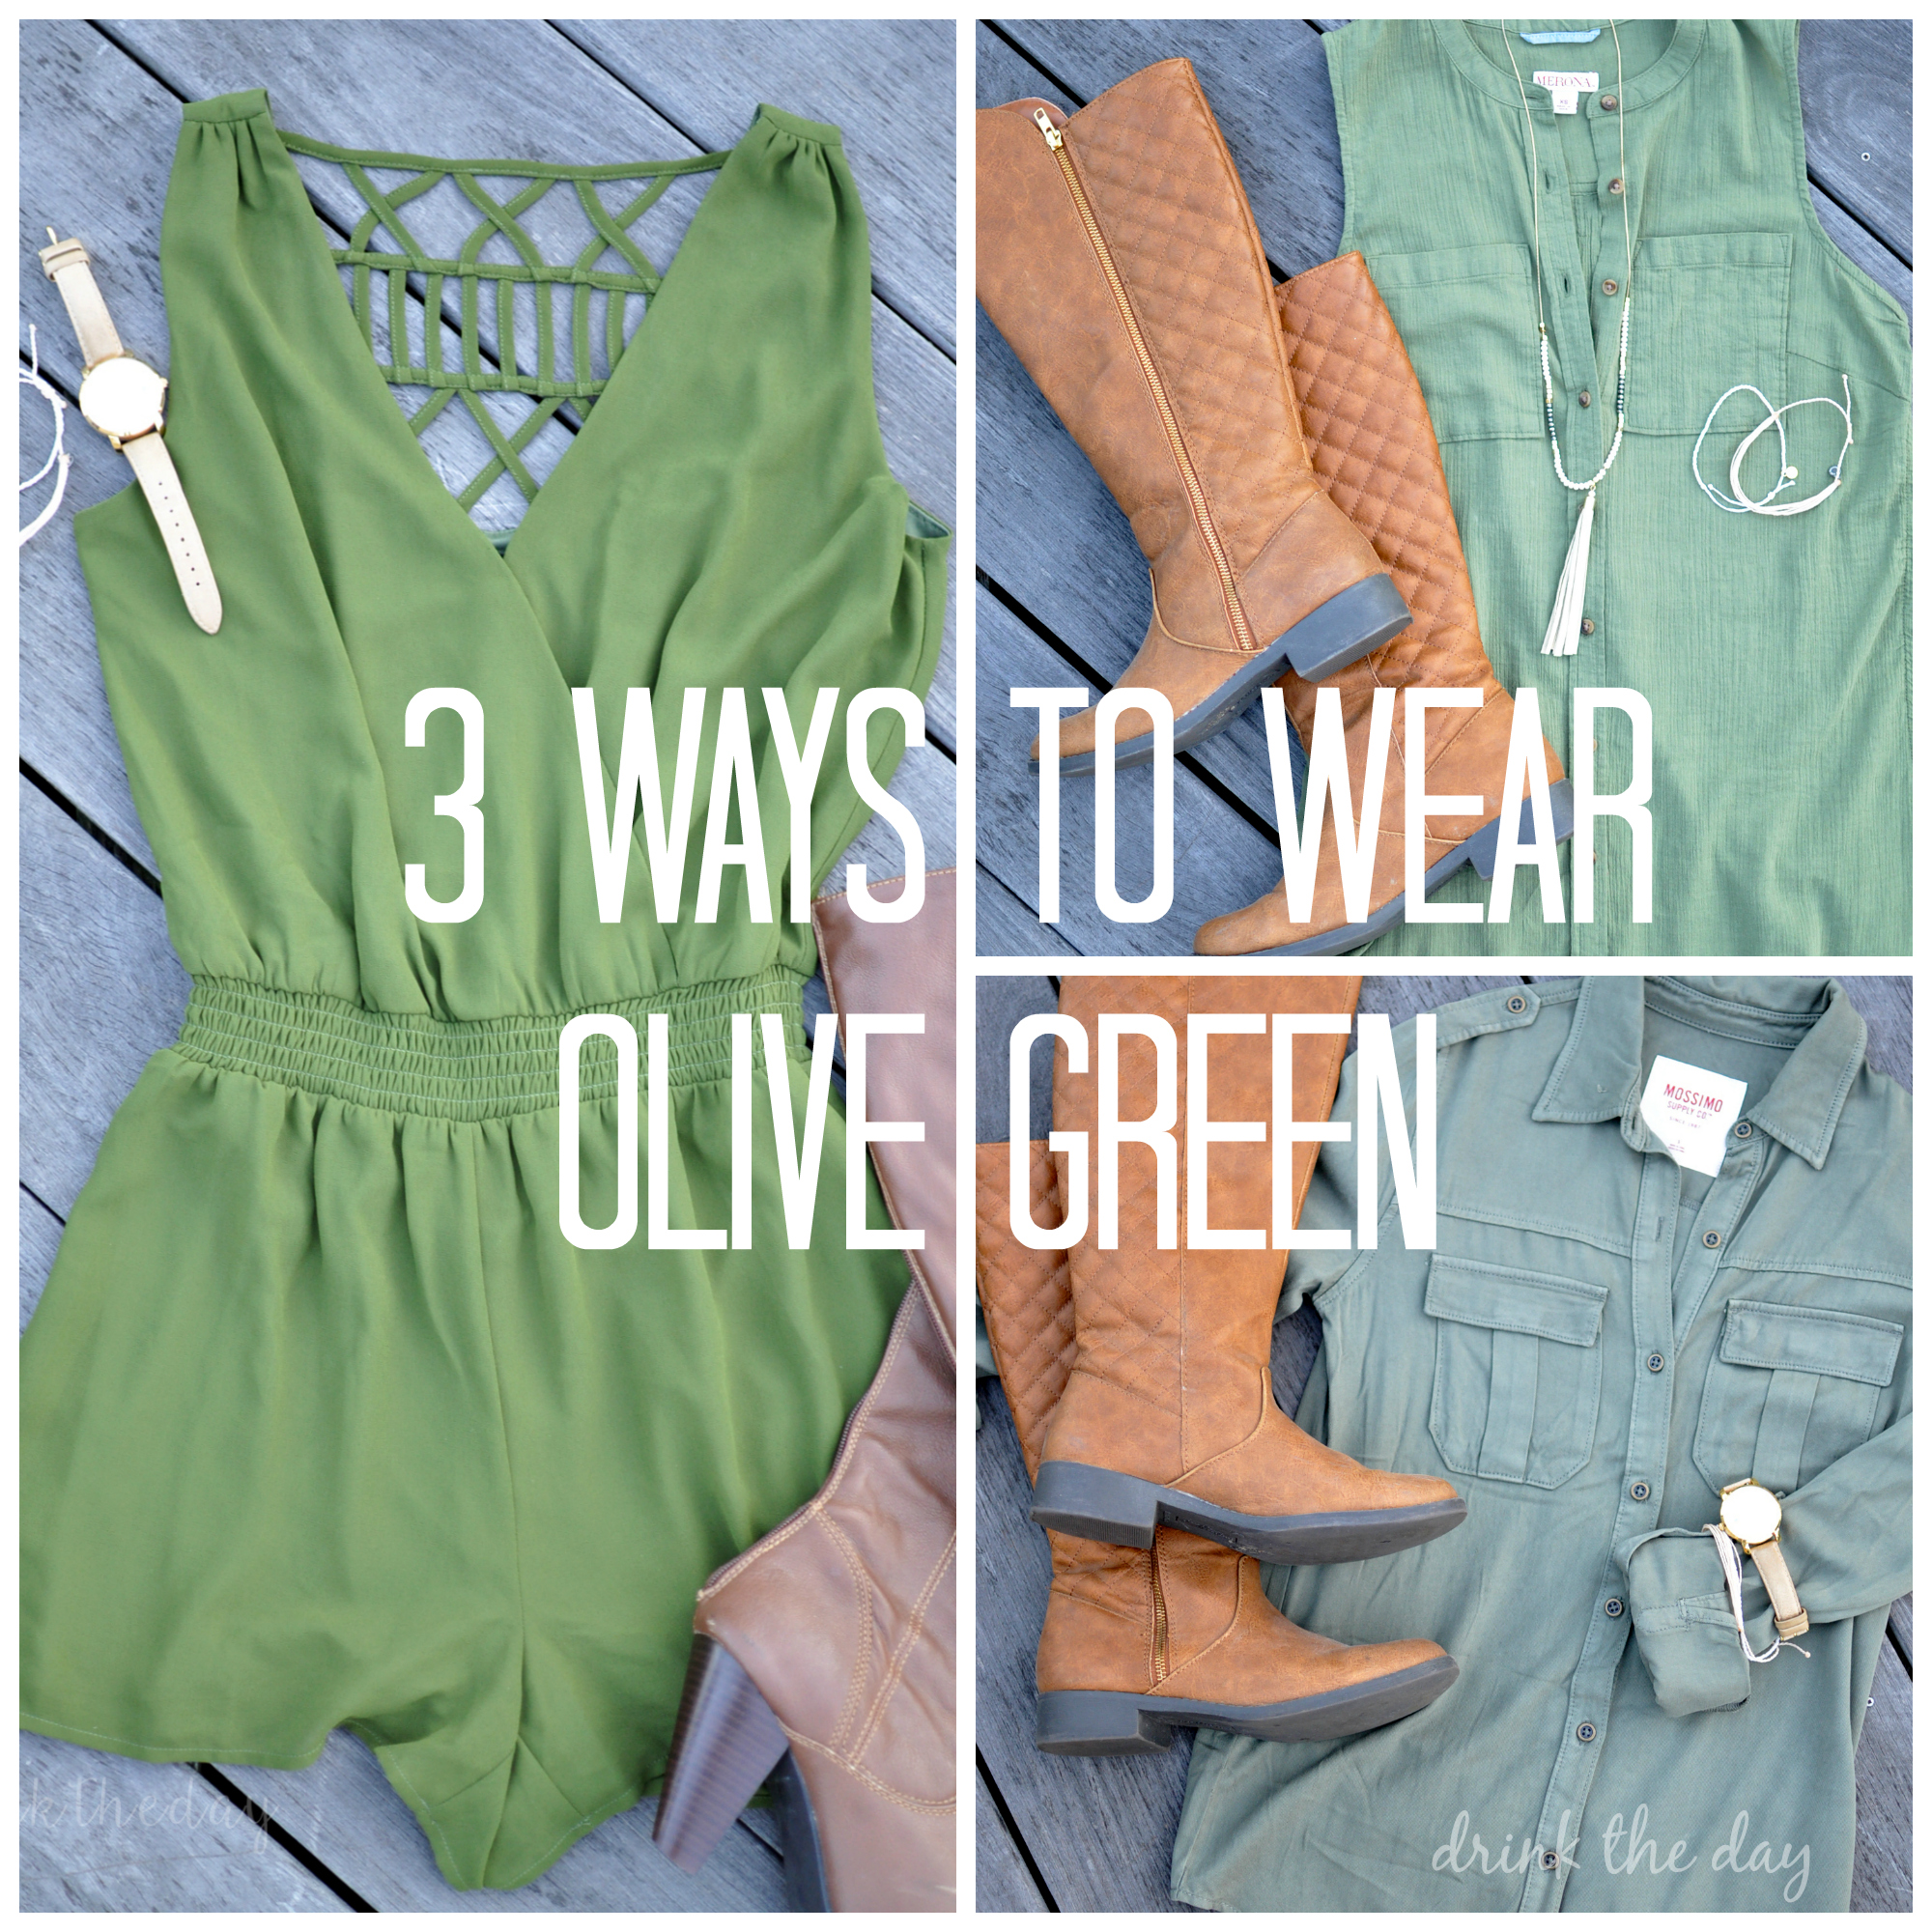 3 Ways To Wear Olive Green | Drink the Day